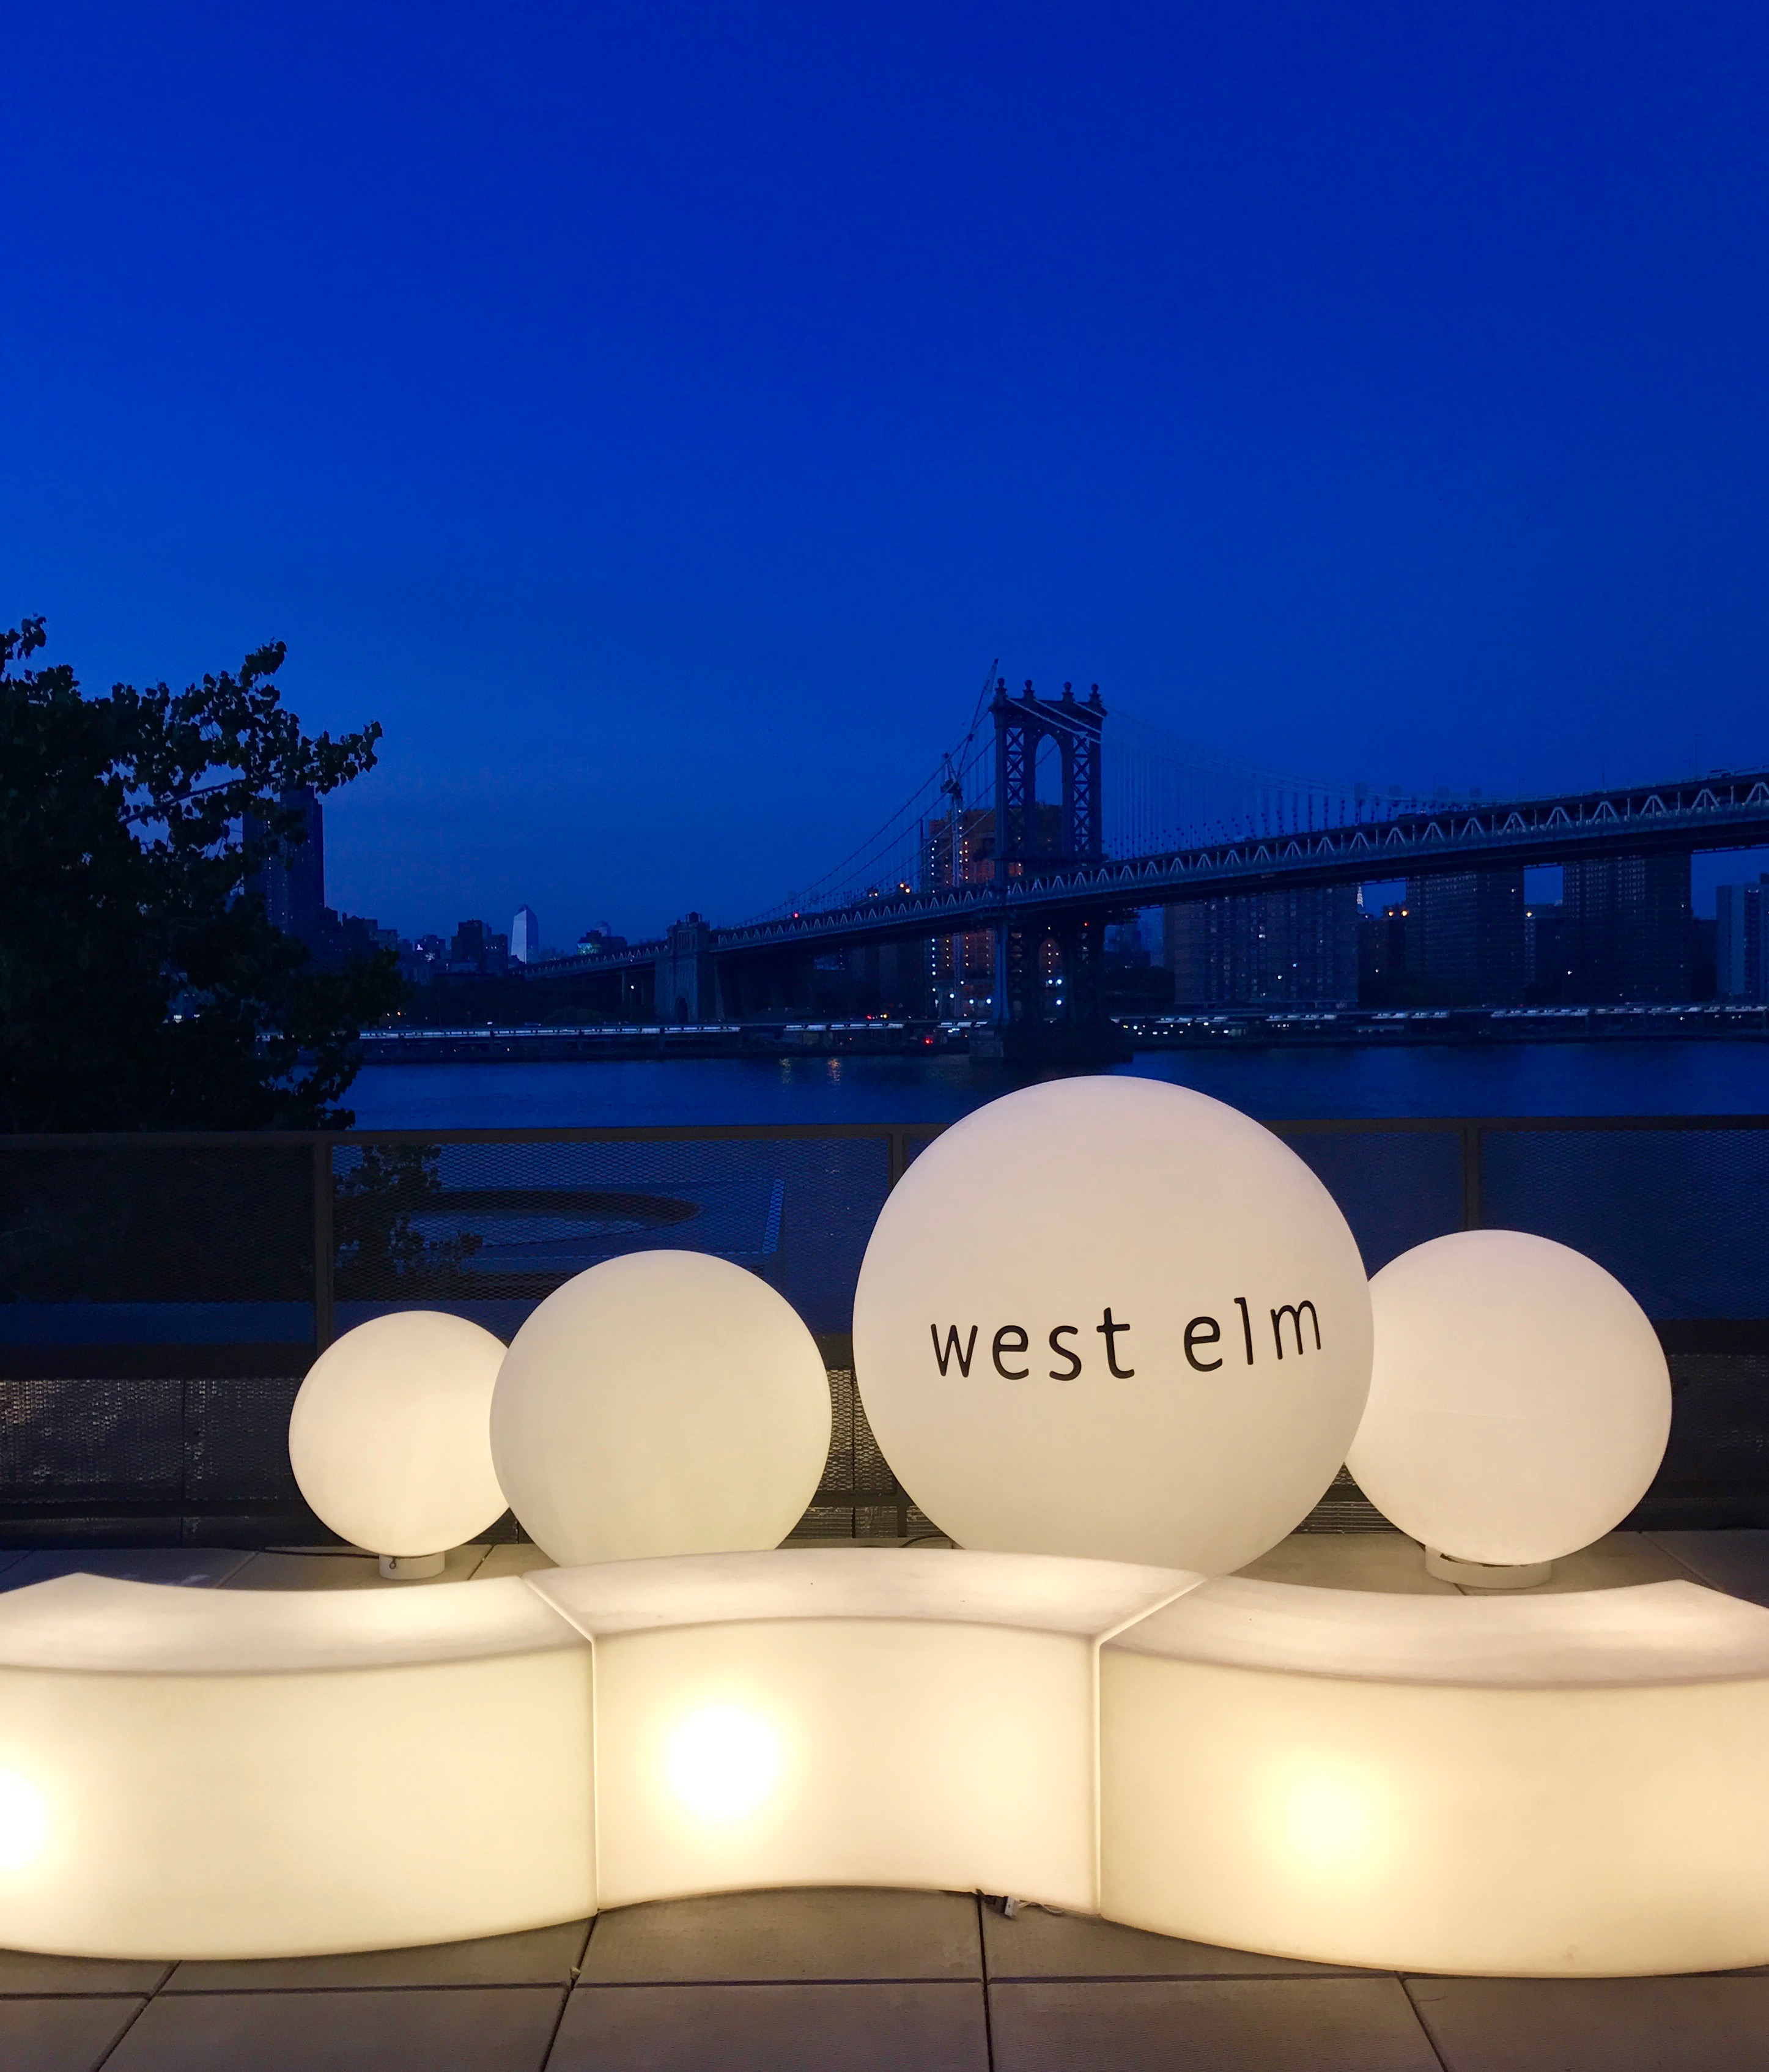 The view from the rooftop of west elm's New York HQ